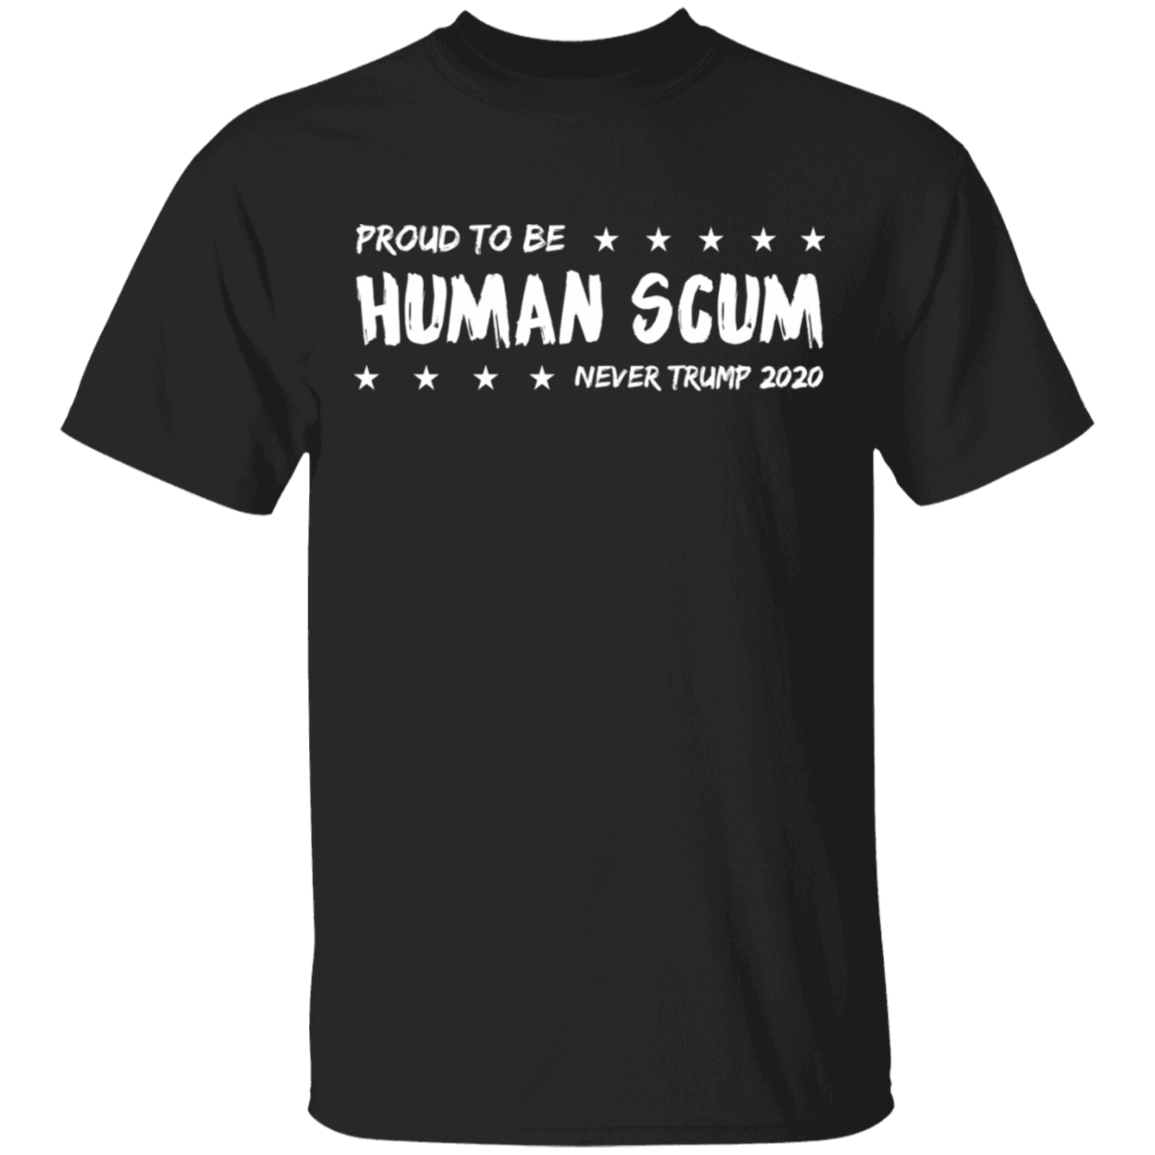 I'm Proud To Be Called Human Scum T-Shirts, Hoodies 1049-9953-82205245-48144 - Tee Ript